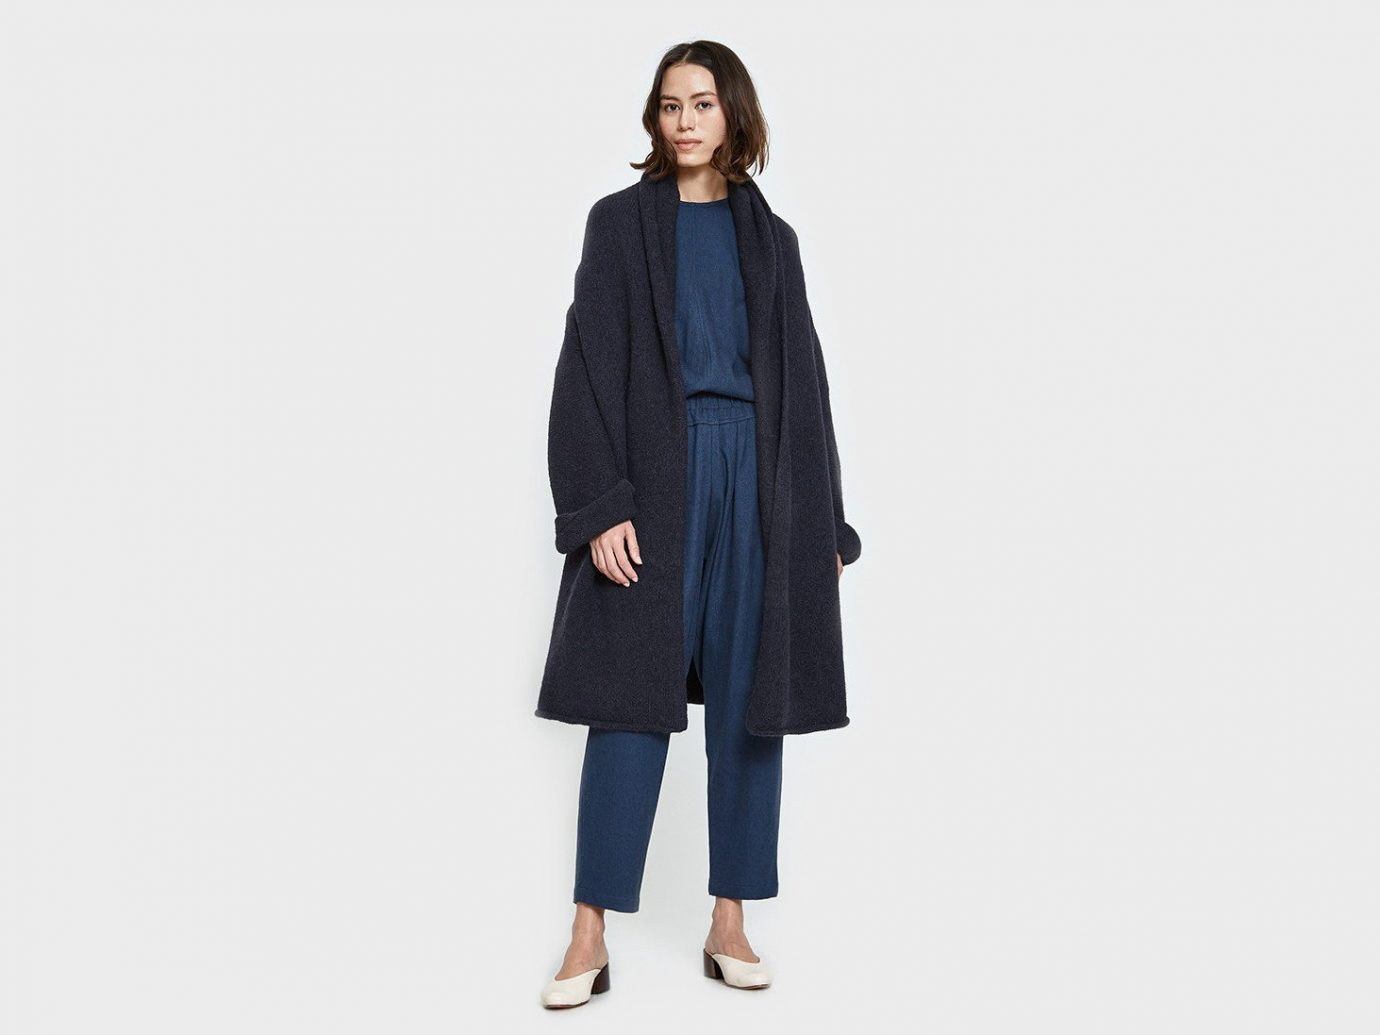 Style + Design Travel Shop coat clothing overcoat fashion model electric blue suit